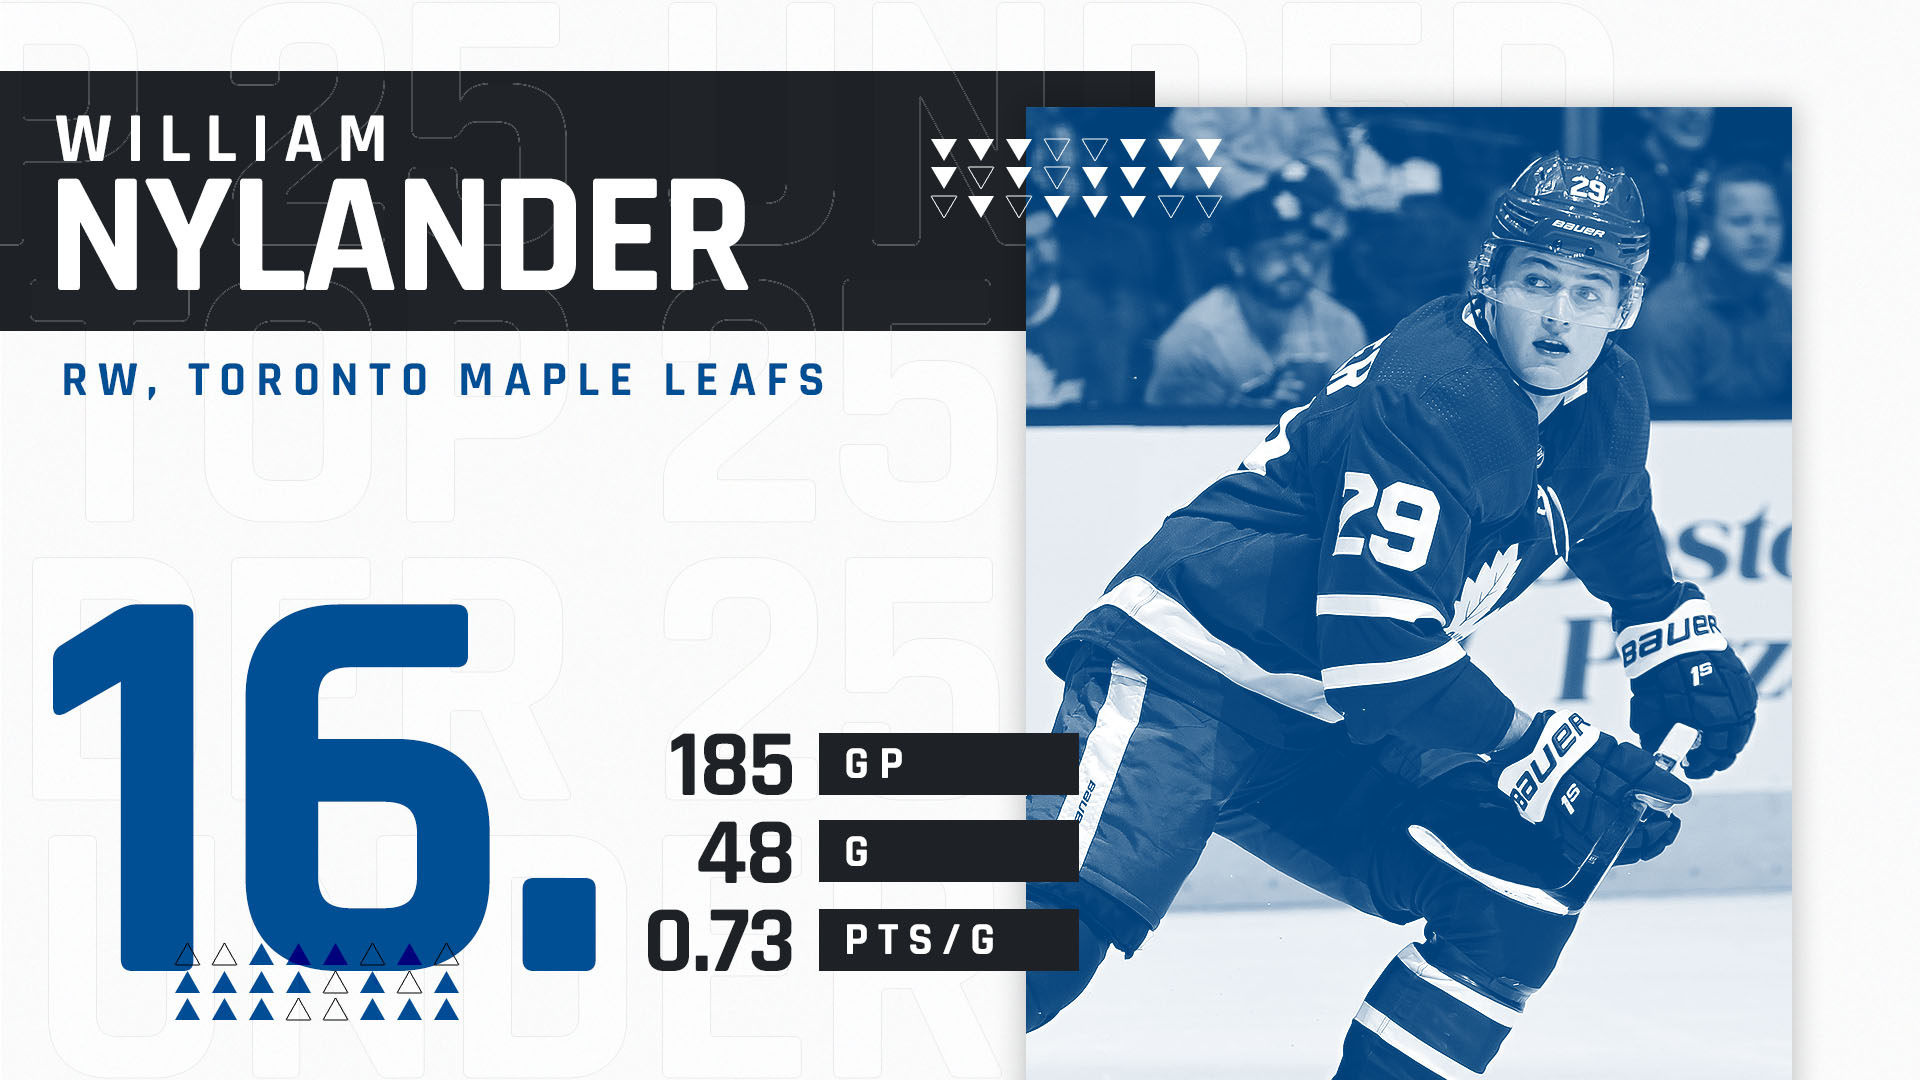 william-nylander-25-081718-ftr